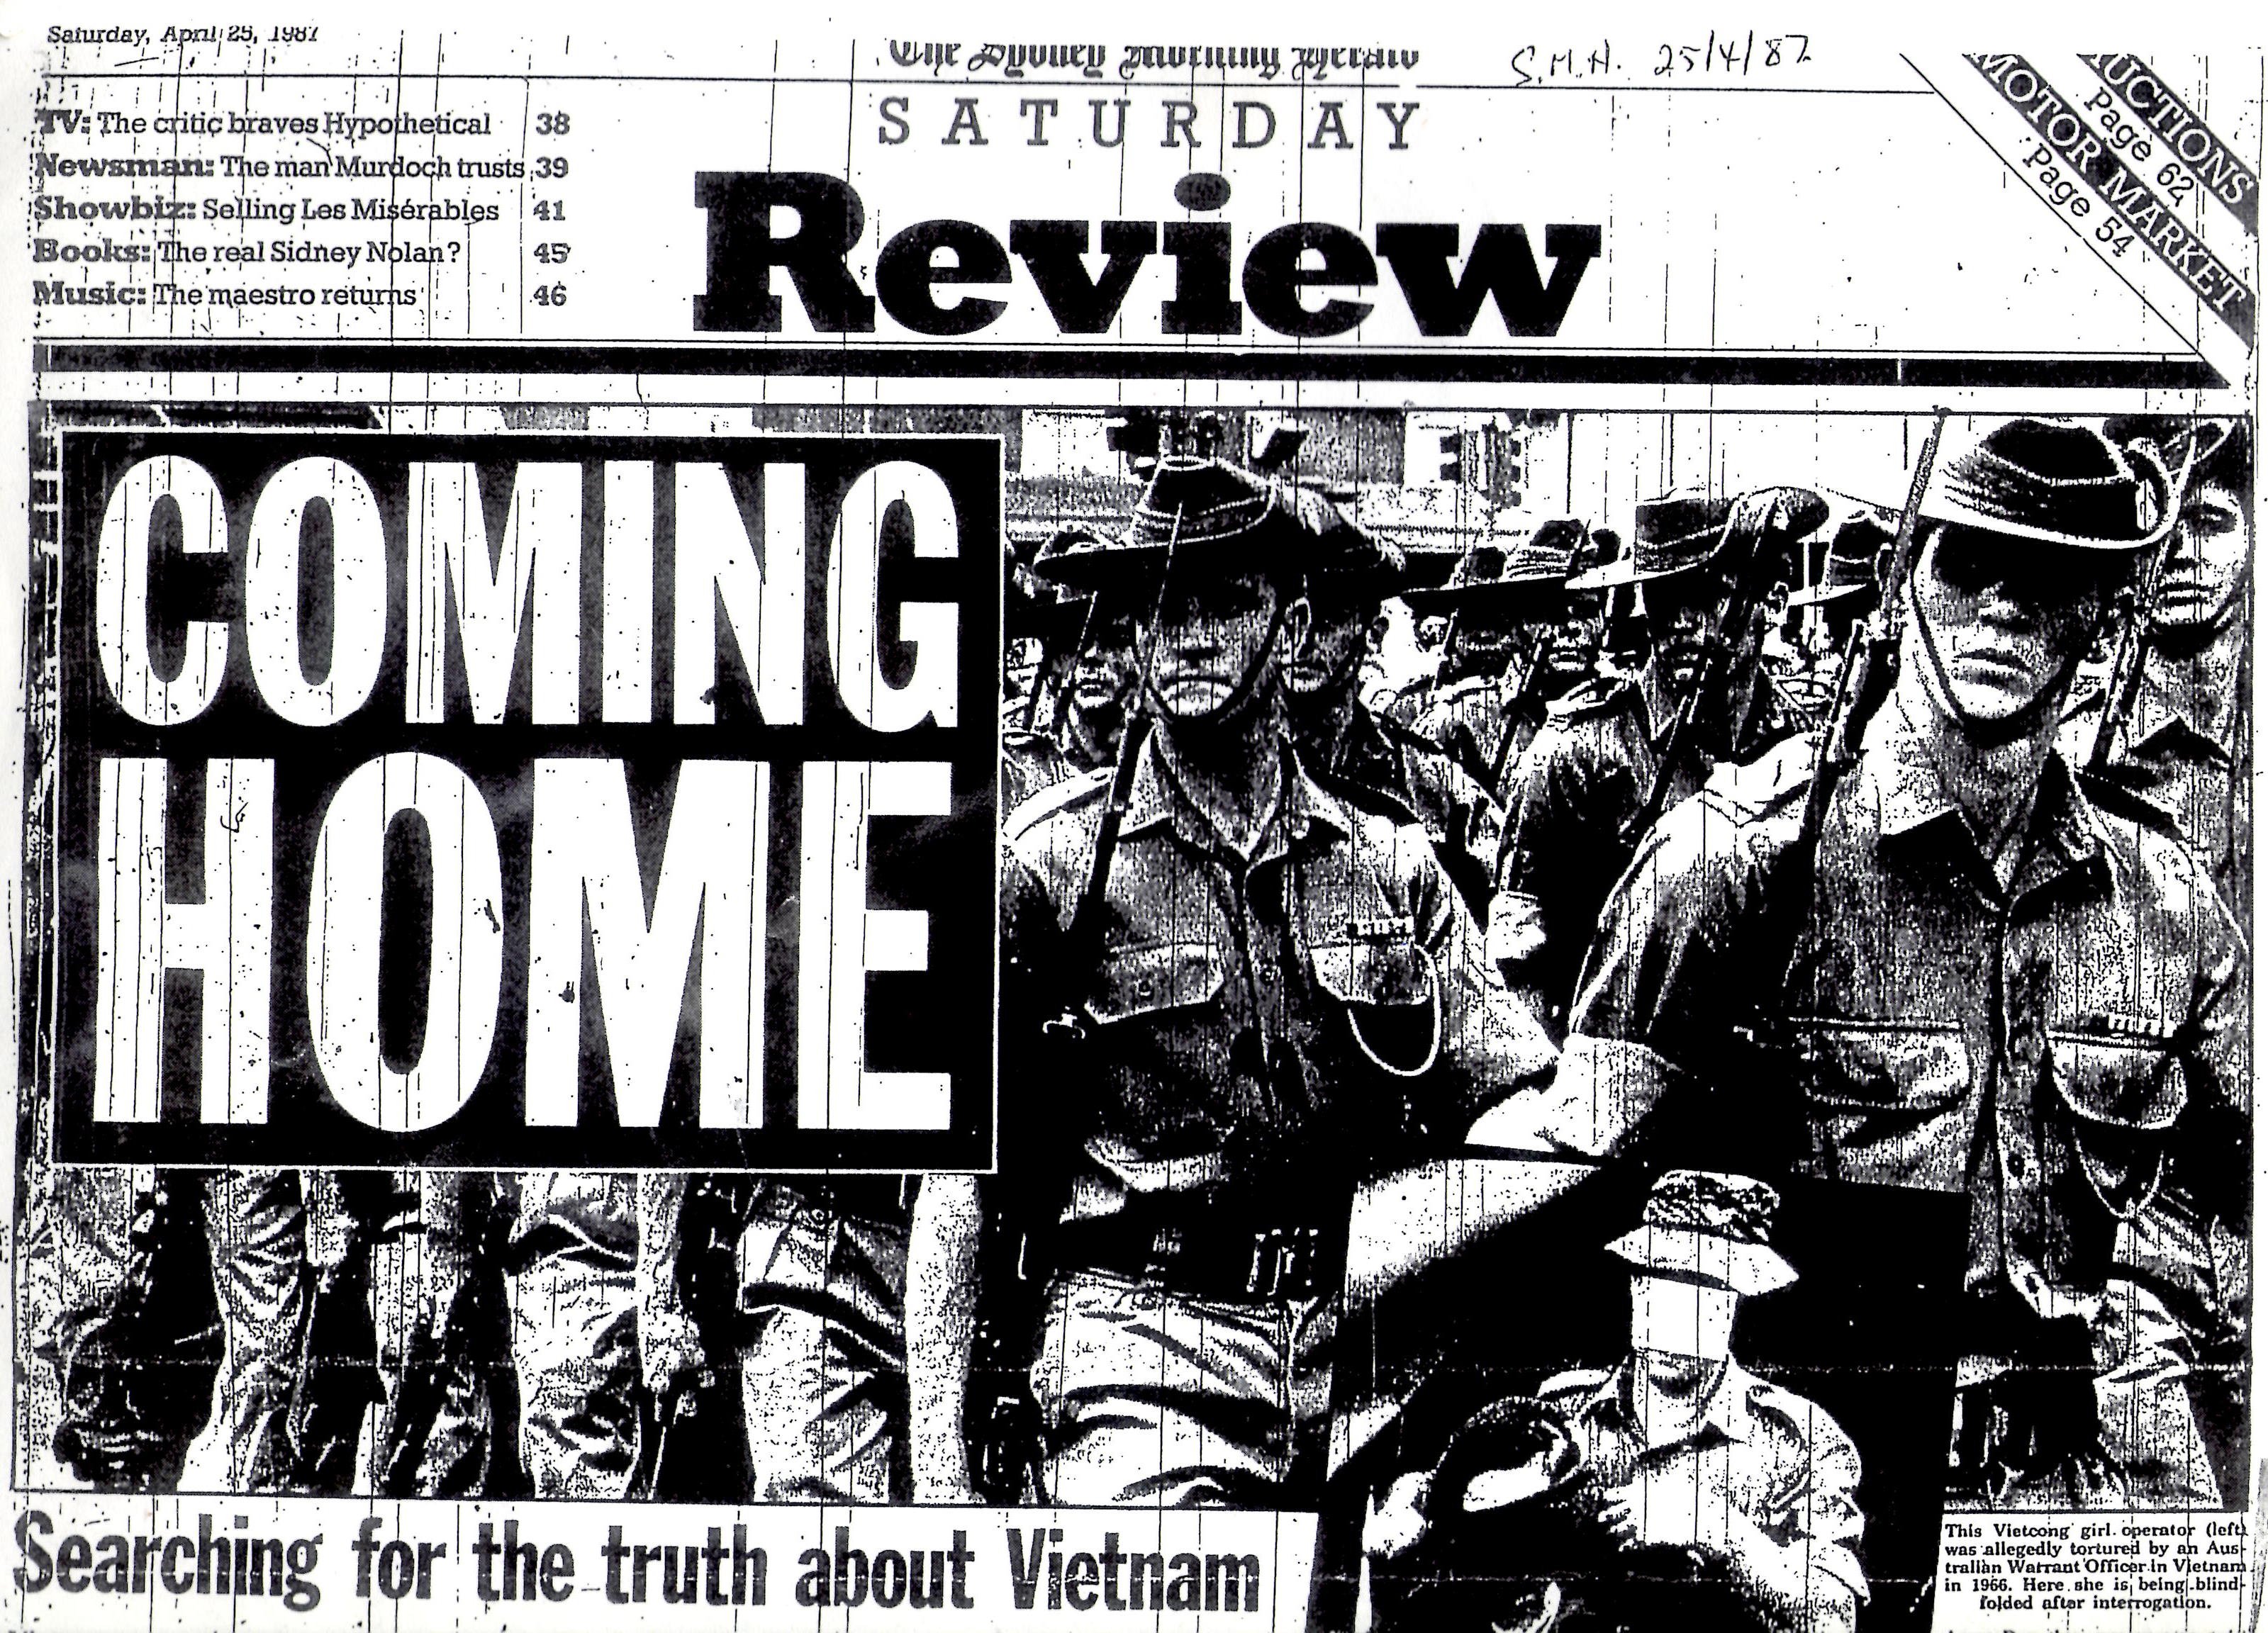 Why did Australia's involvement in the Vietnam war divide Australian society?